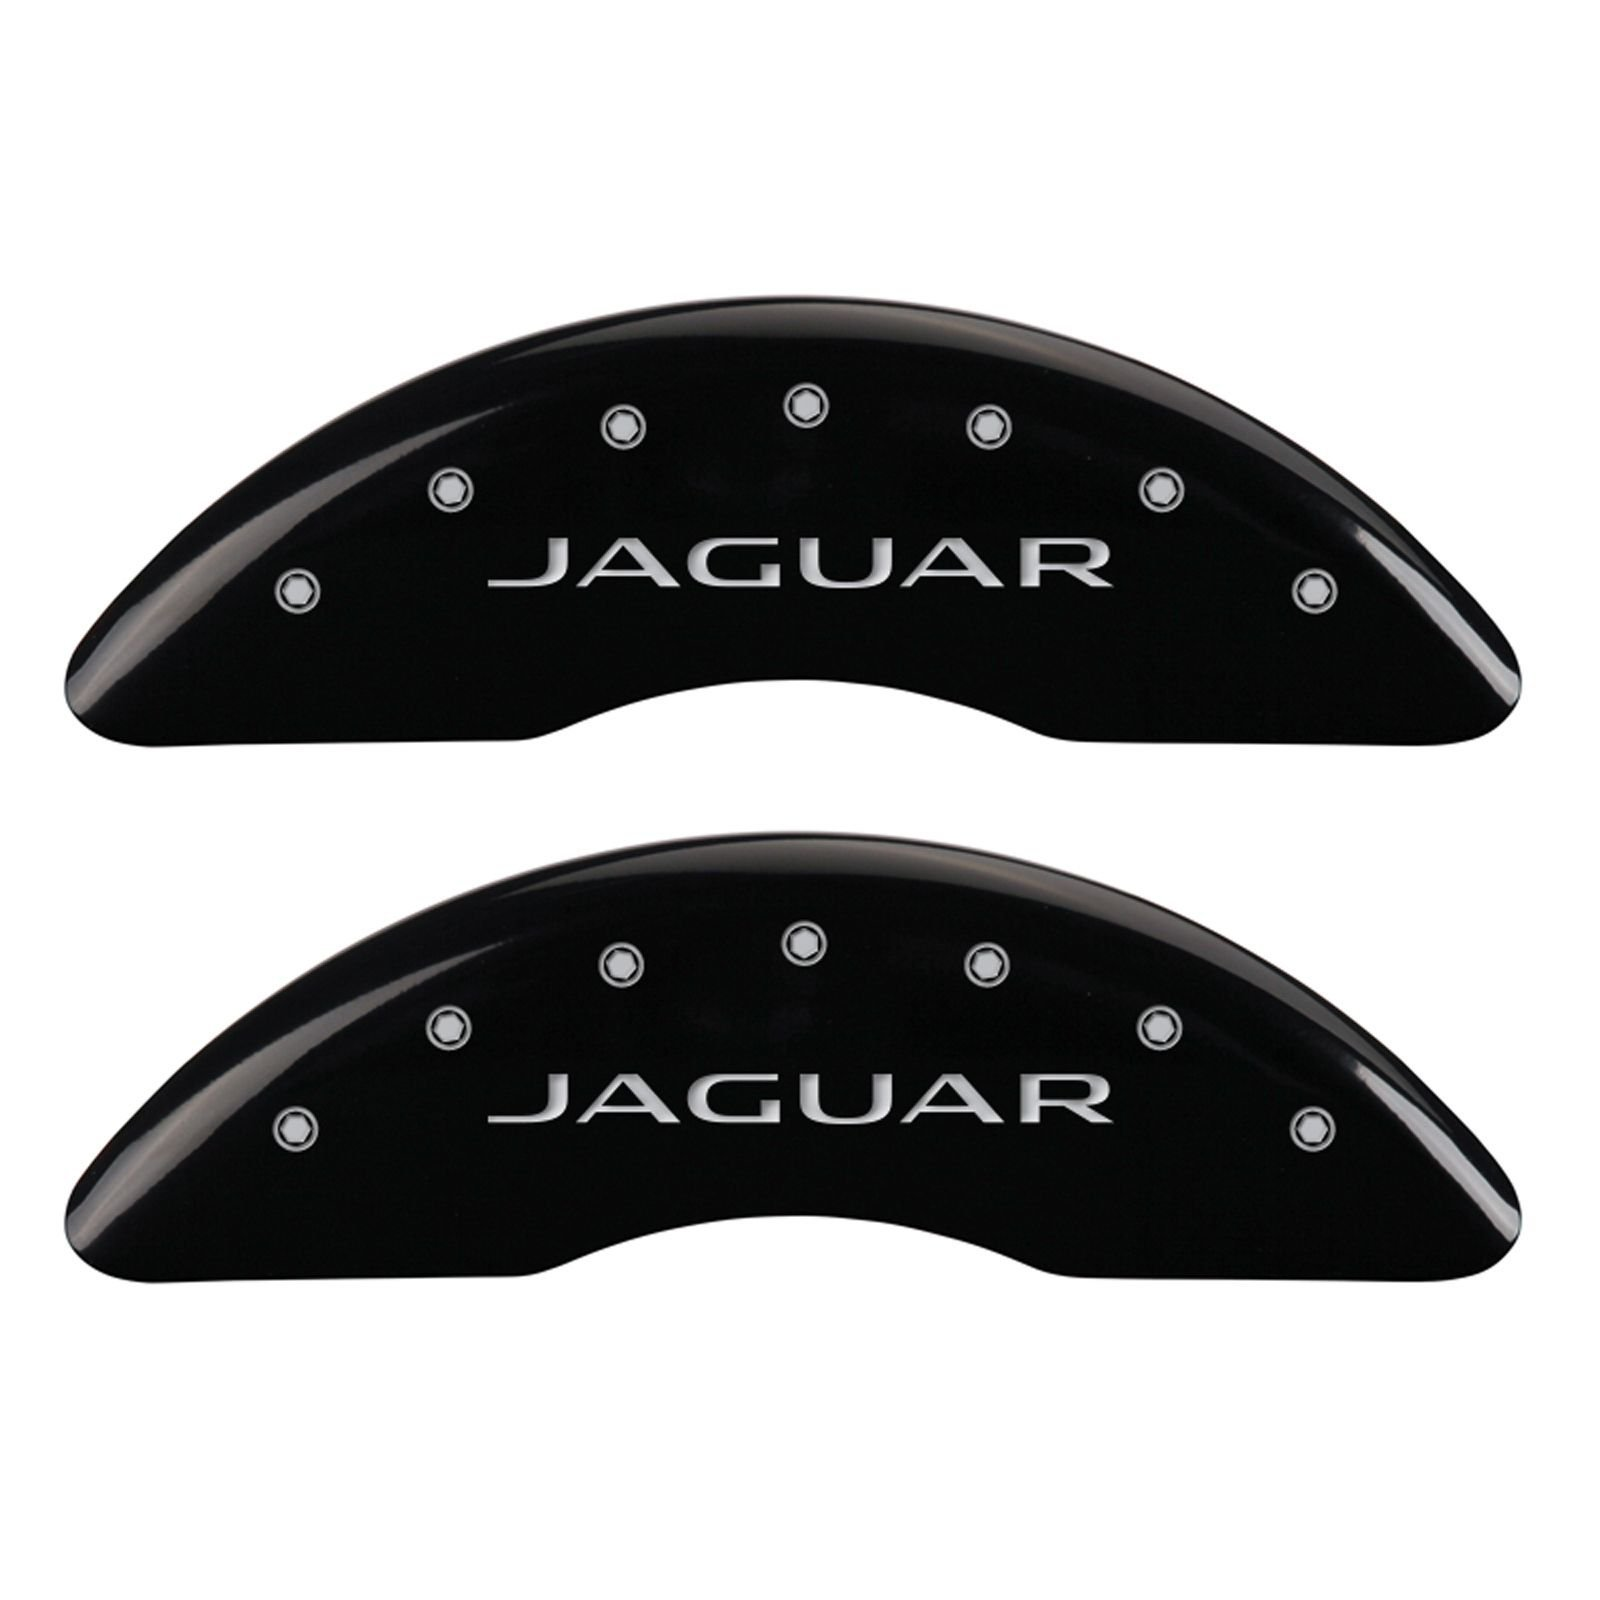 MGP Caliper Covers 41003SJALBK Caliper Cover (Black Powder Coat Finish, Engraved Front: Jaguar - Engraved Rear: Leaper/2012, Silver Characters, Set of 4) by MGP Caliper Covers